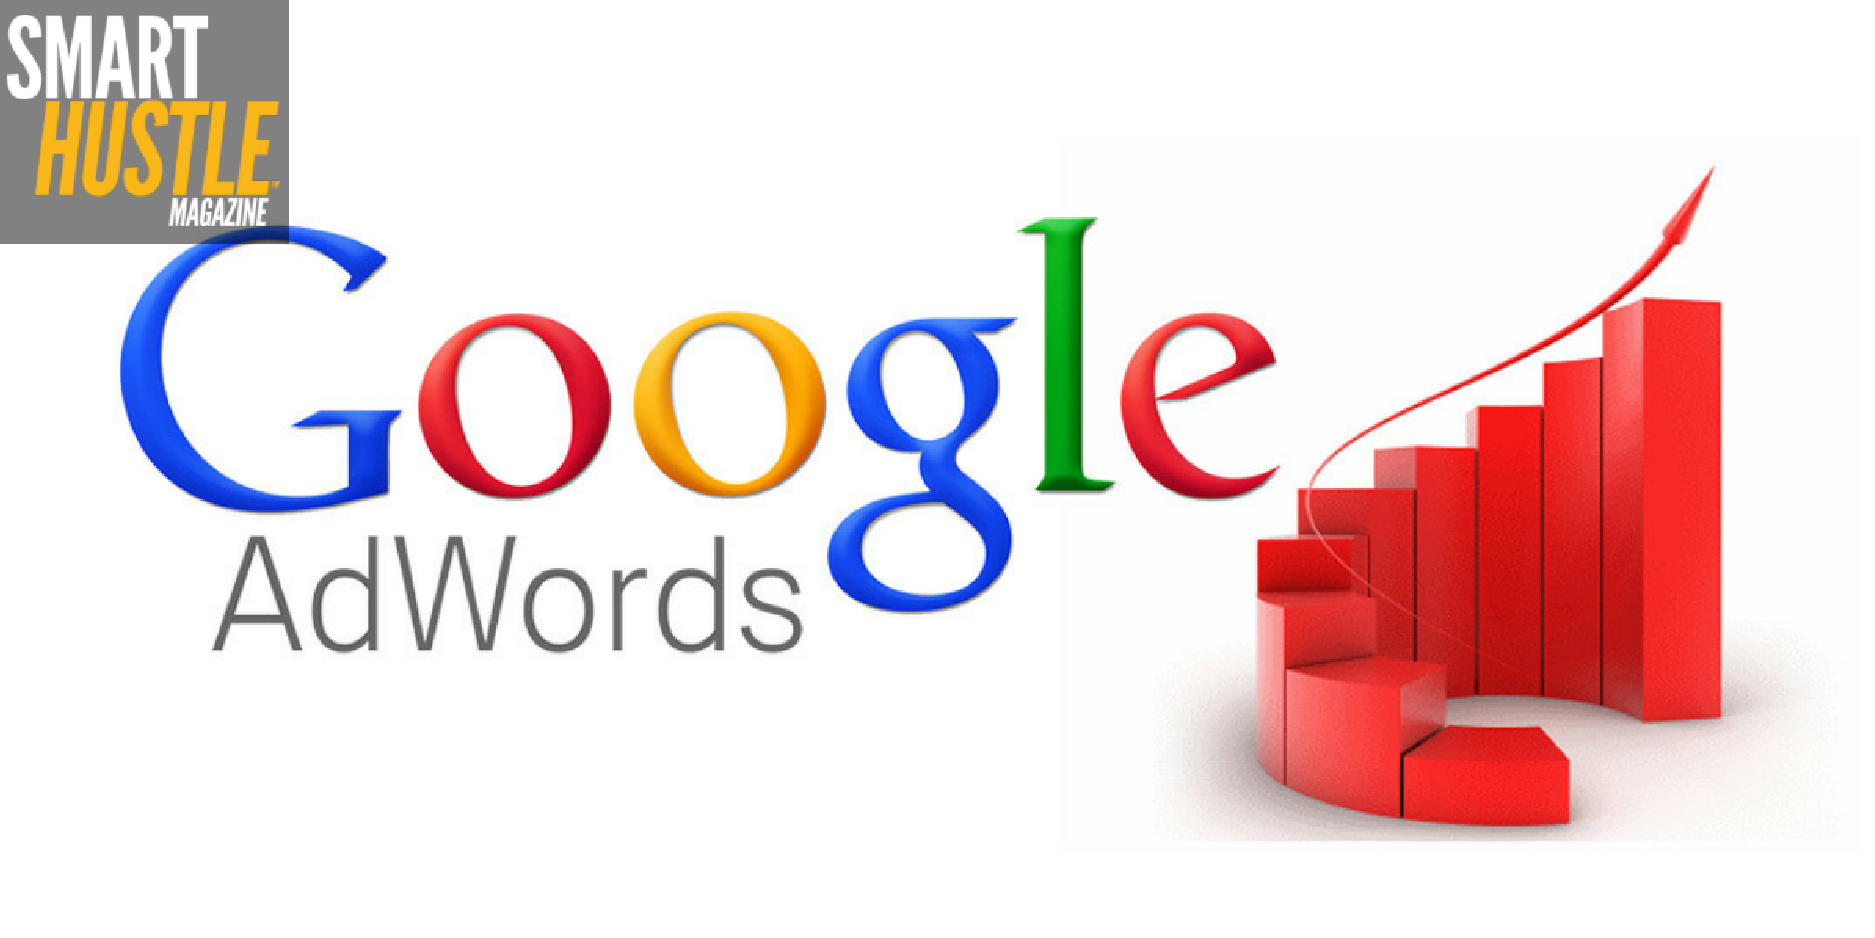 How 4 Small Businesses Used Google Adwords to Grow Their Biz